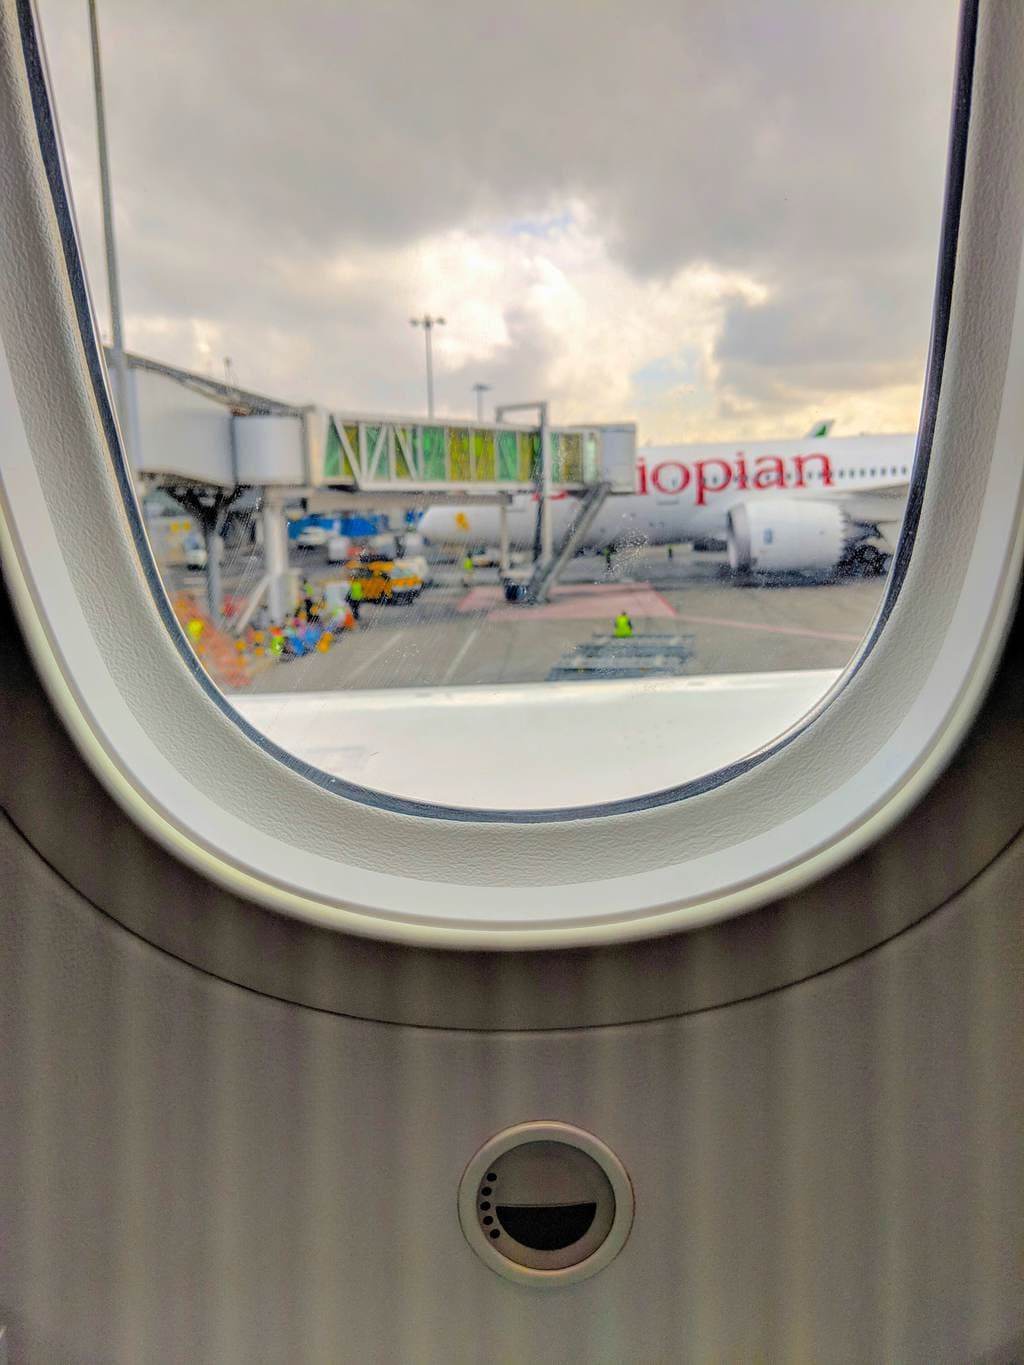 New Ethiopian Airlines Boeing 787 window